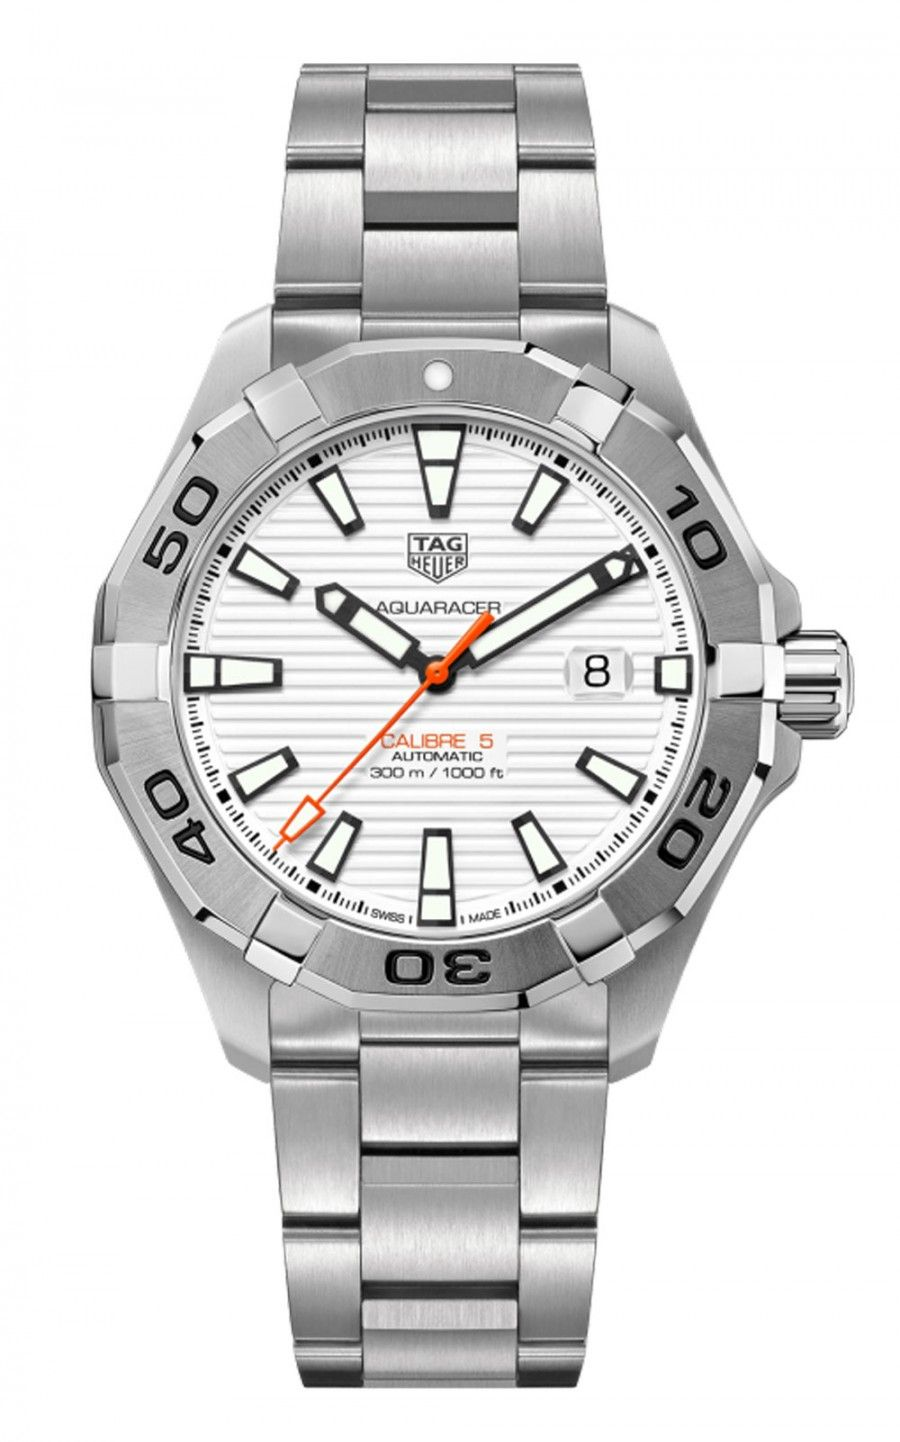 Hình Đồng hồ TAG HEUER AQUARACER - Automatic Watch - Diameter 43 mm WAY2013.BA0927